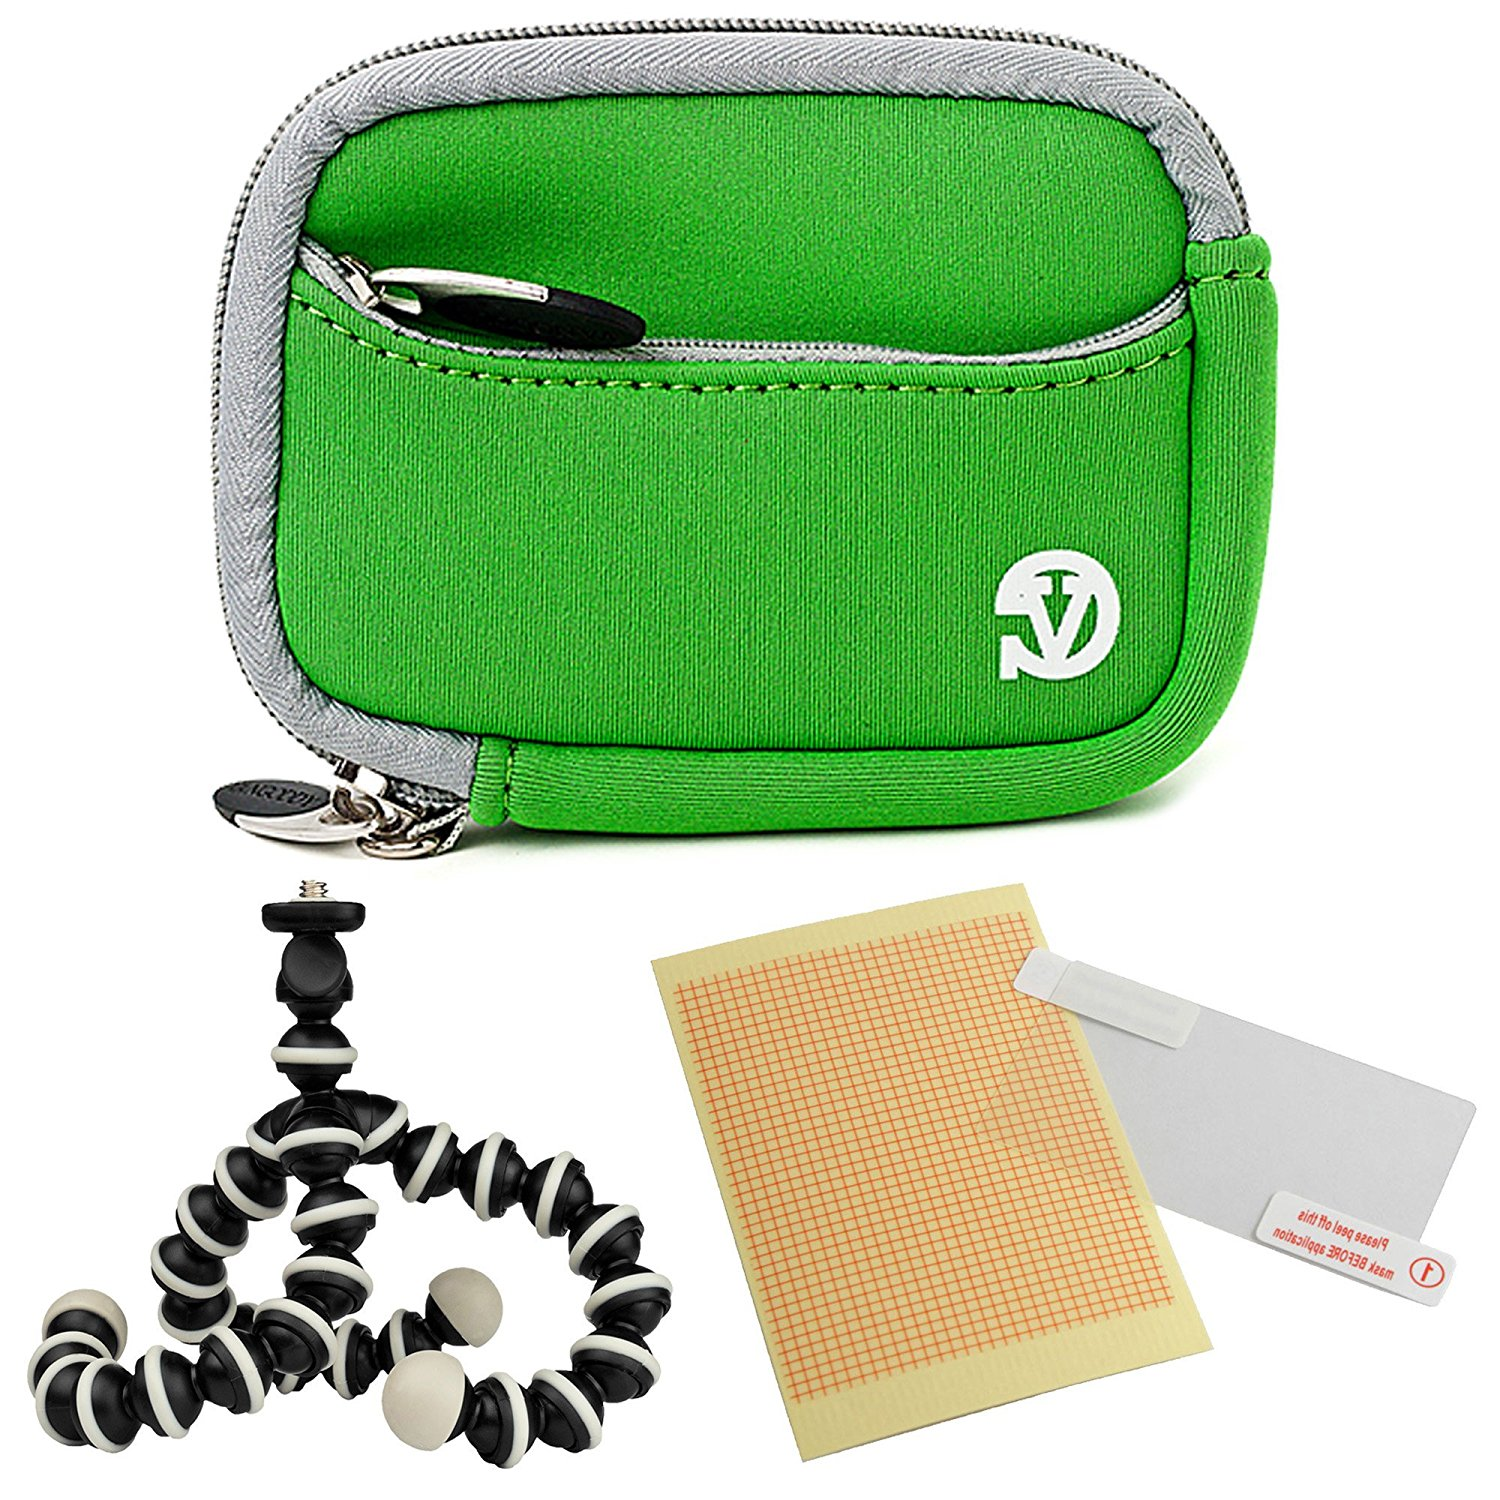 VanGoddy Mini Glove Sleeve Pouch Case for Panasonic Lumix DMC Series Digital Cameras (Green Gray Trim) + Screen Protector + Mini Tripod Stand